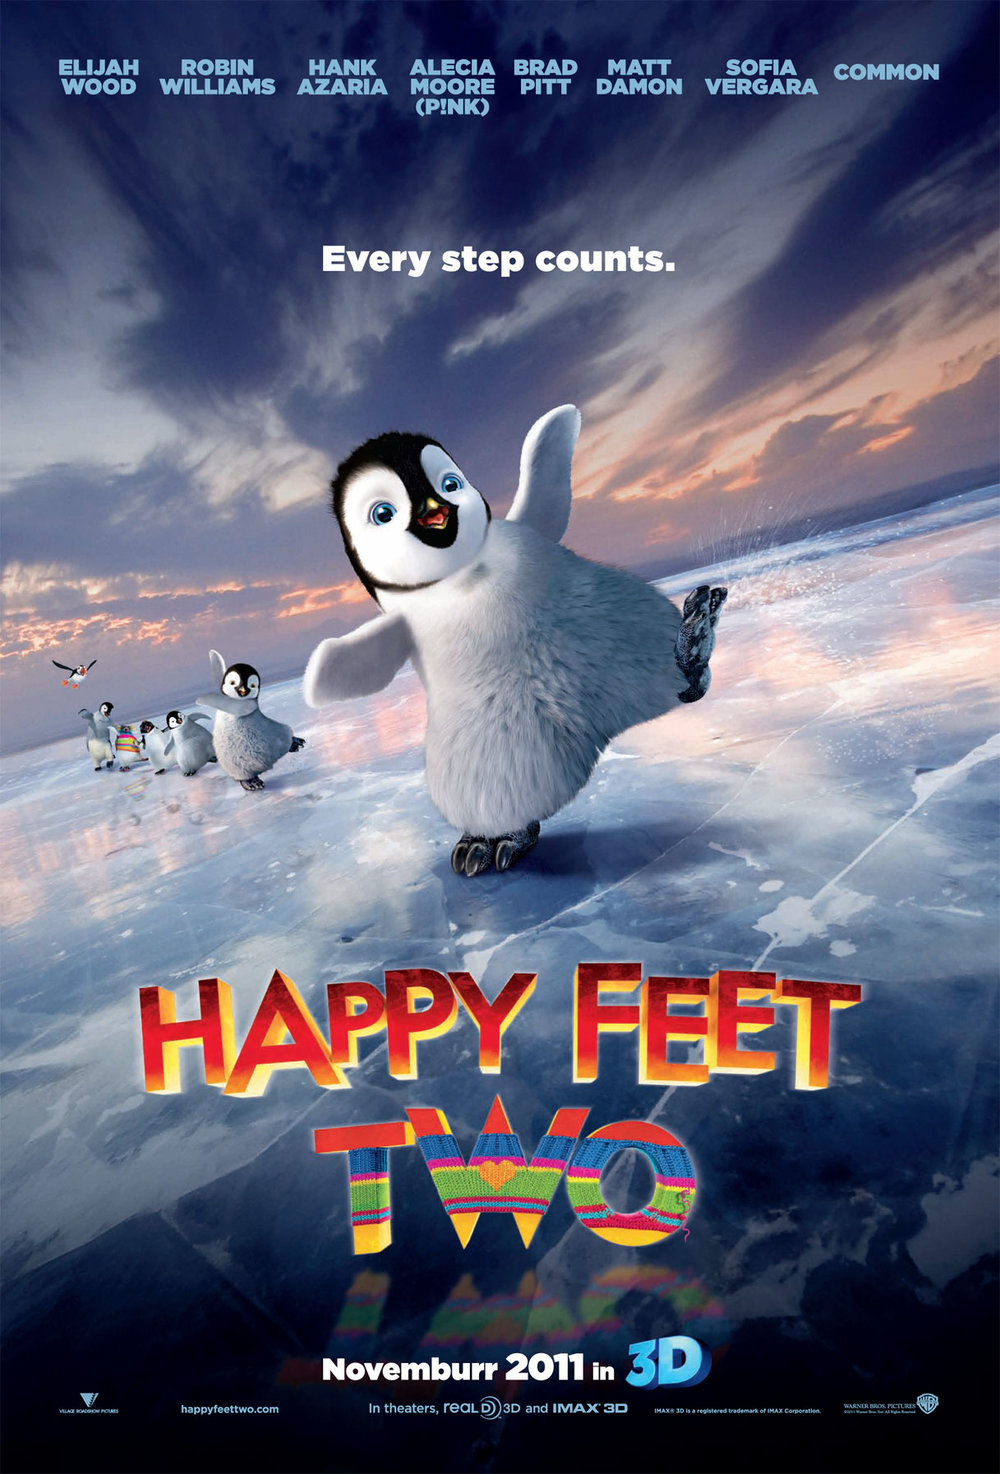 Happy-Feet-Two-Wallpaper-Movie-Poster-2.jpg